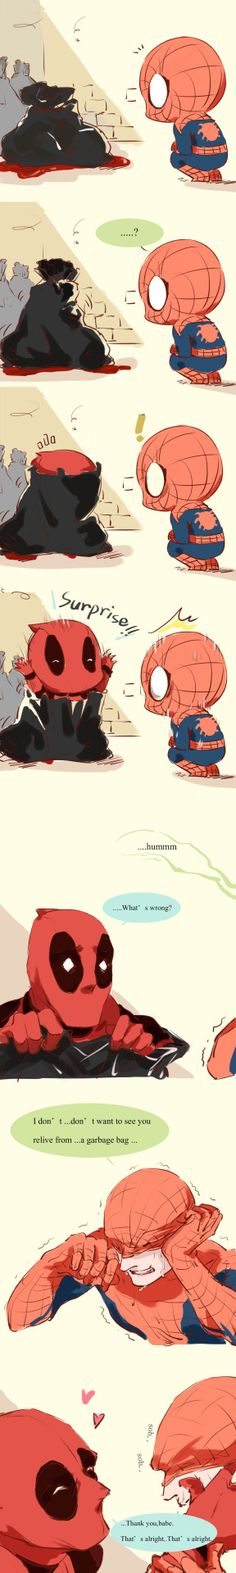 "miyake-kenwayyyy: ""The inspiration comes from on AO3.Thanks to the author for giving me such a great article! My heart was broken when I see pieces of DP were thrown into the garbage bag. Please don't be so cruel to yourself DP. Spiderman and us love..."